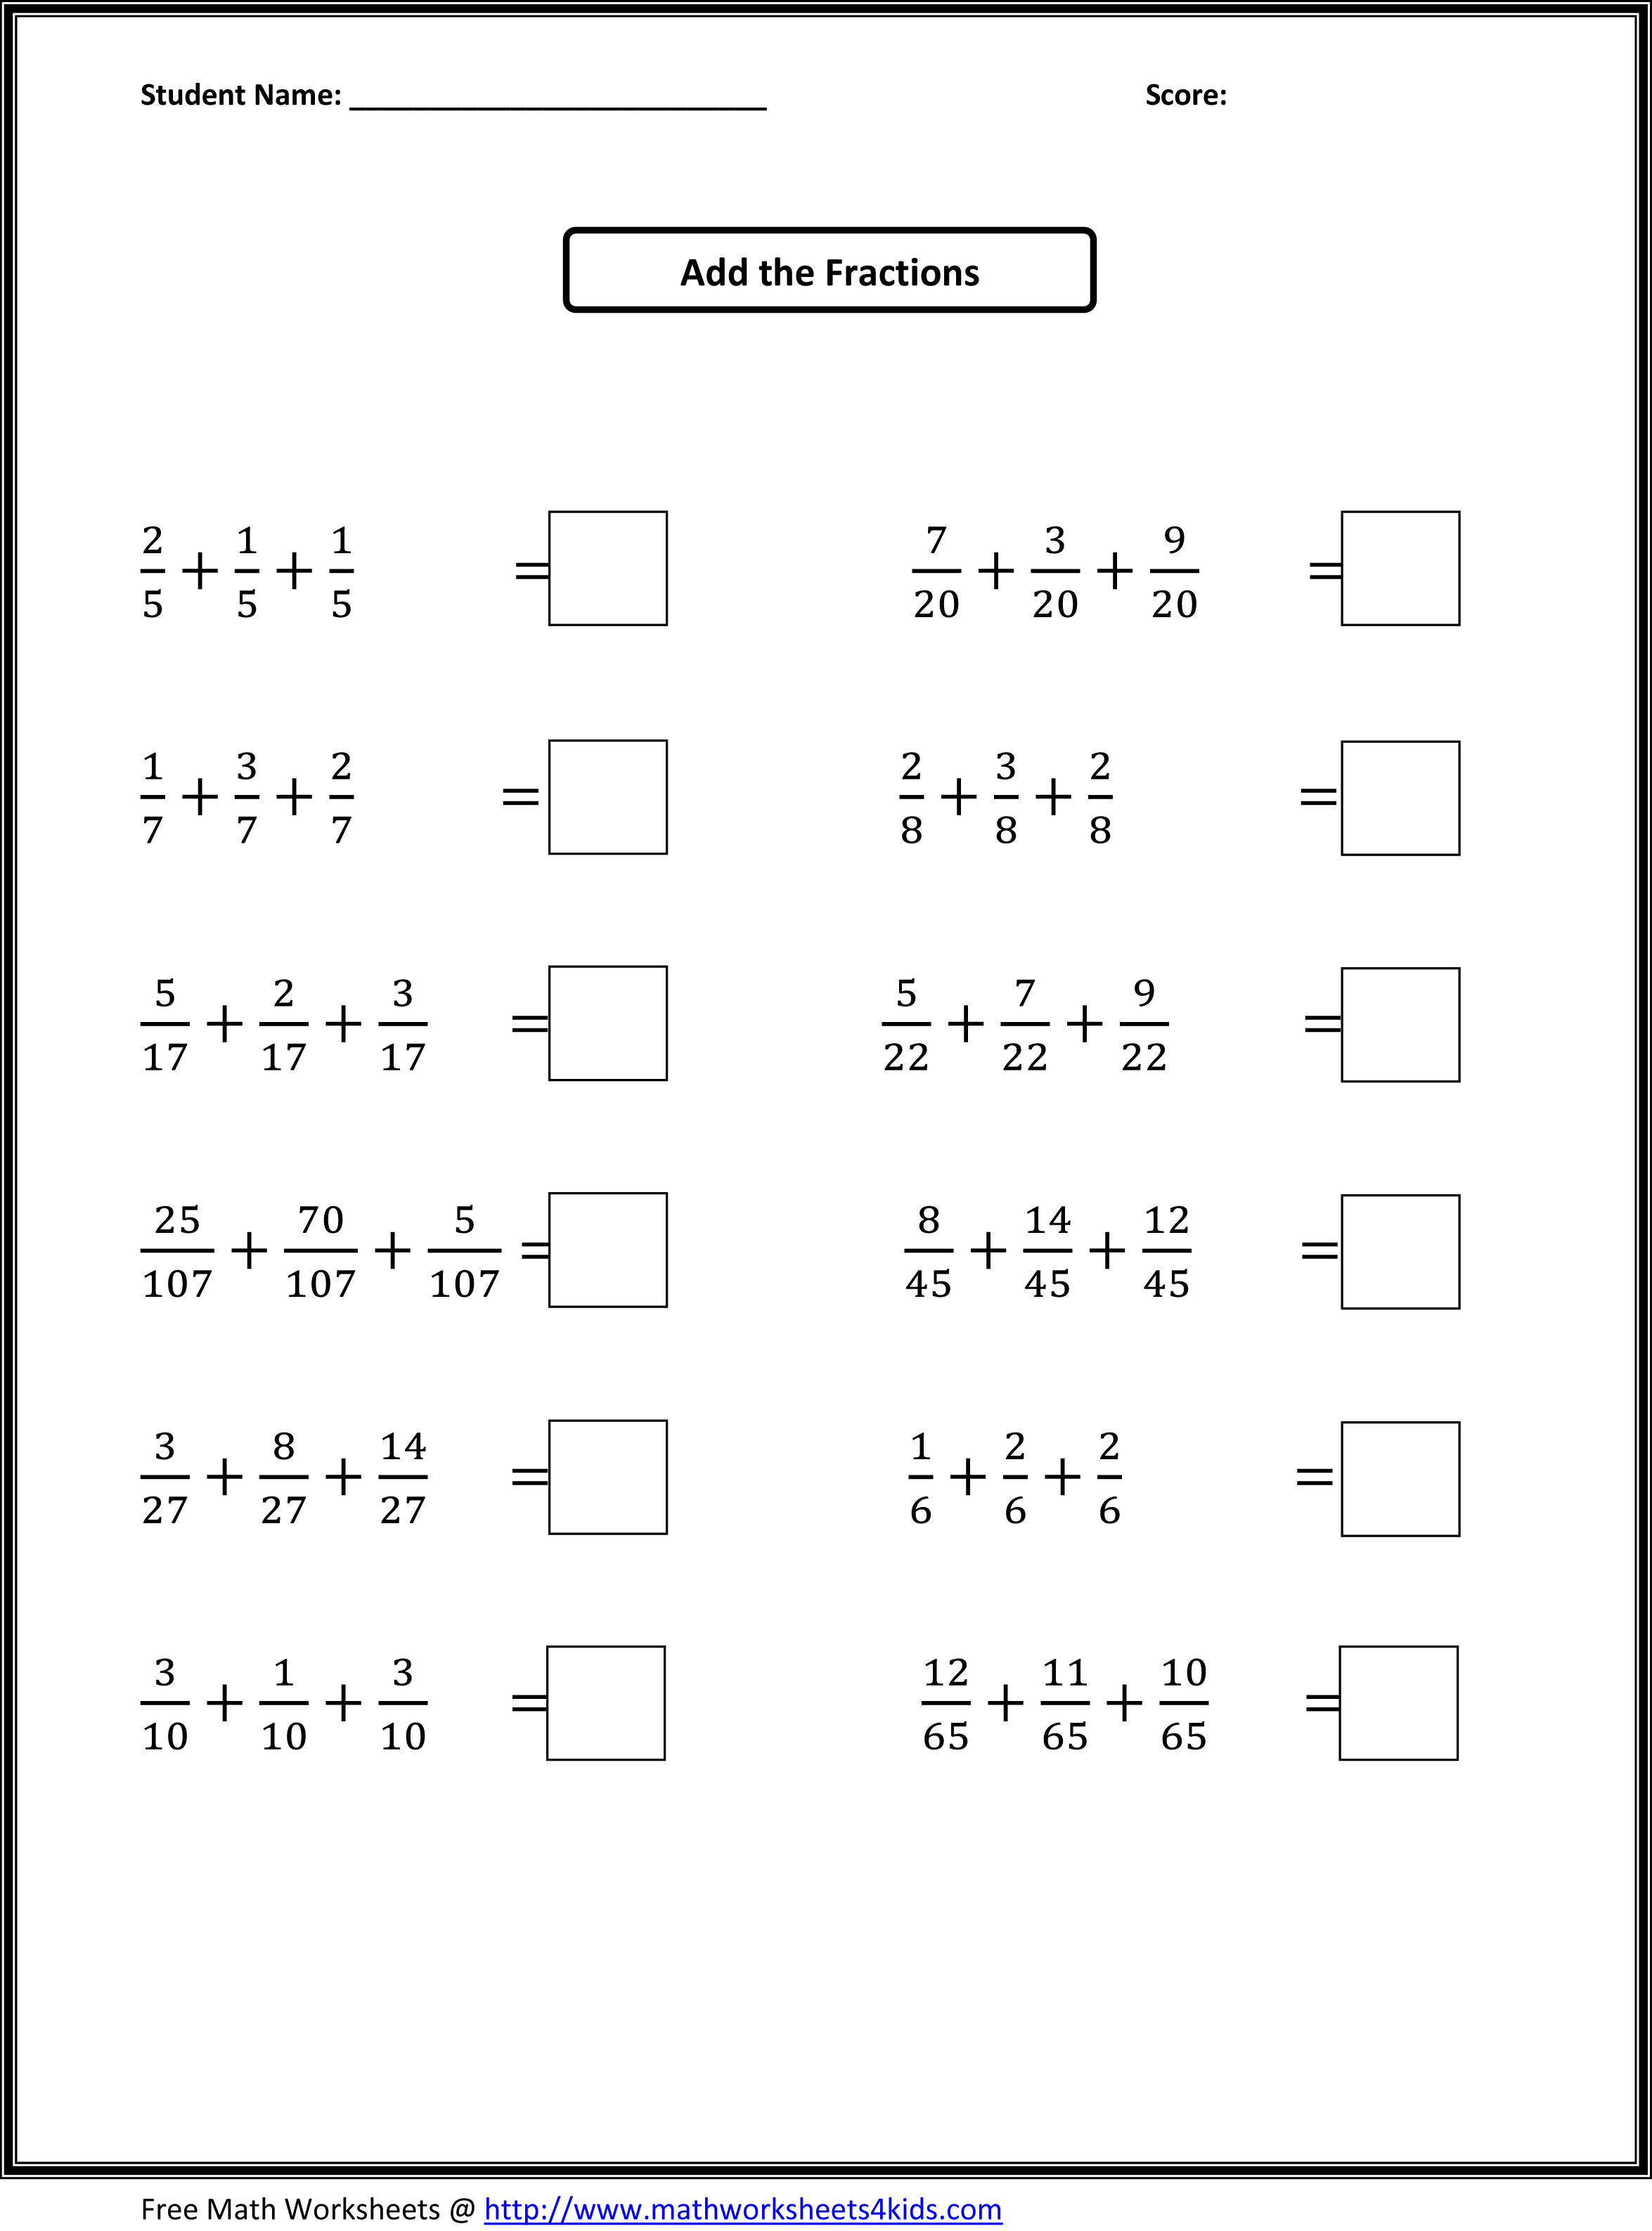 Worksheet Fractions Grade 3 Worksheets 4th grade math worksheets multiplying fractions kids activities addition of worksheets